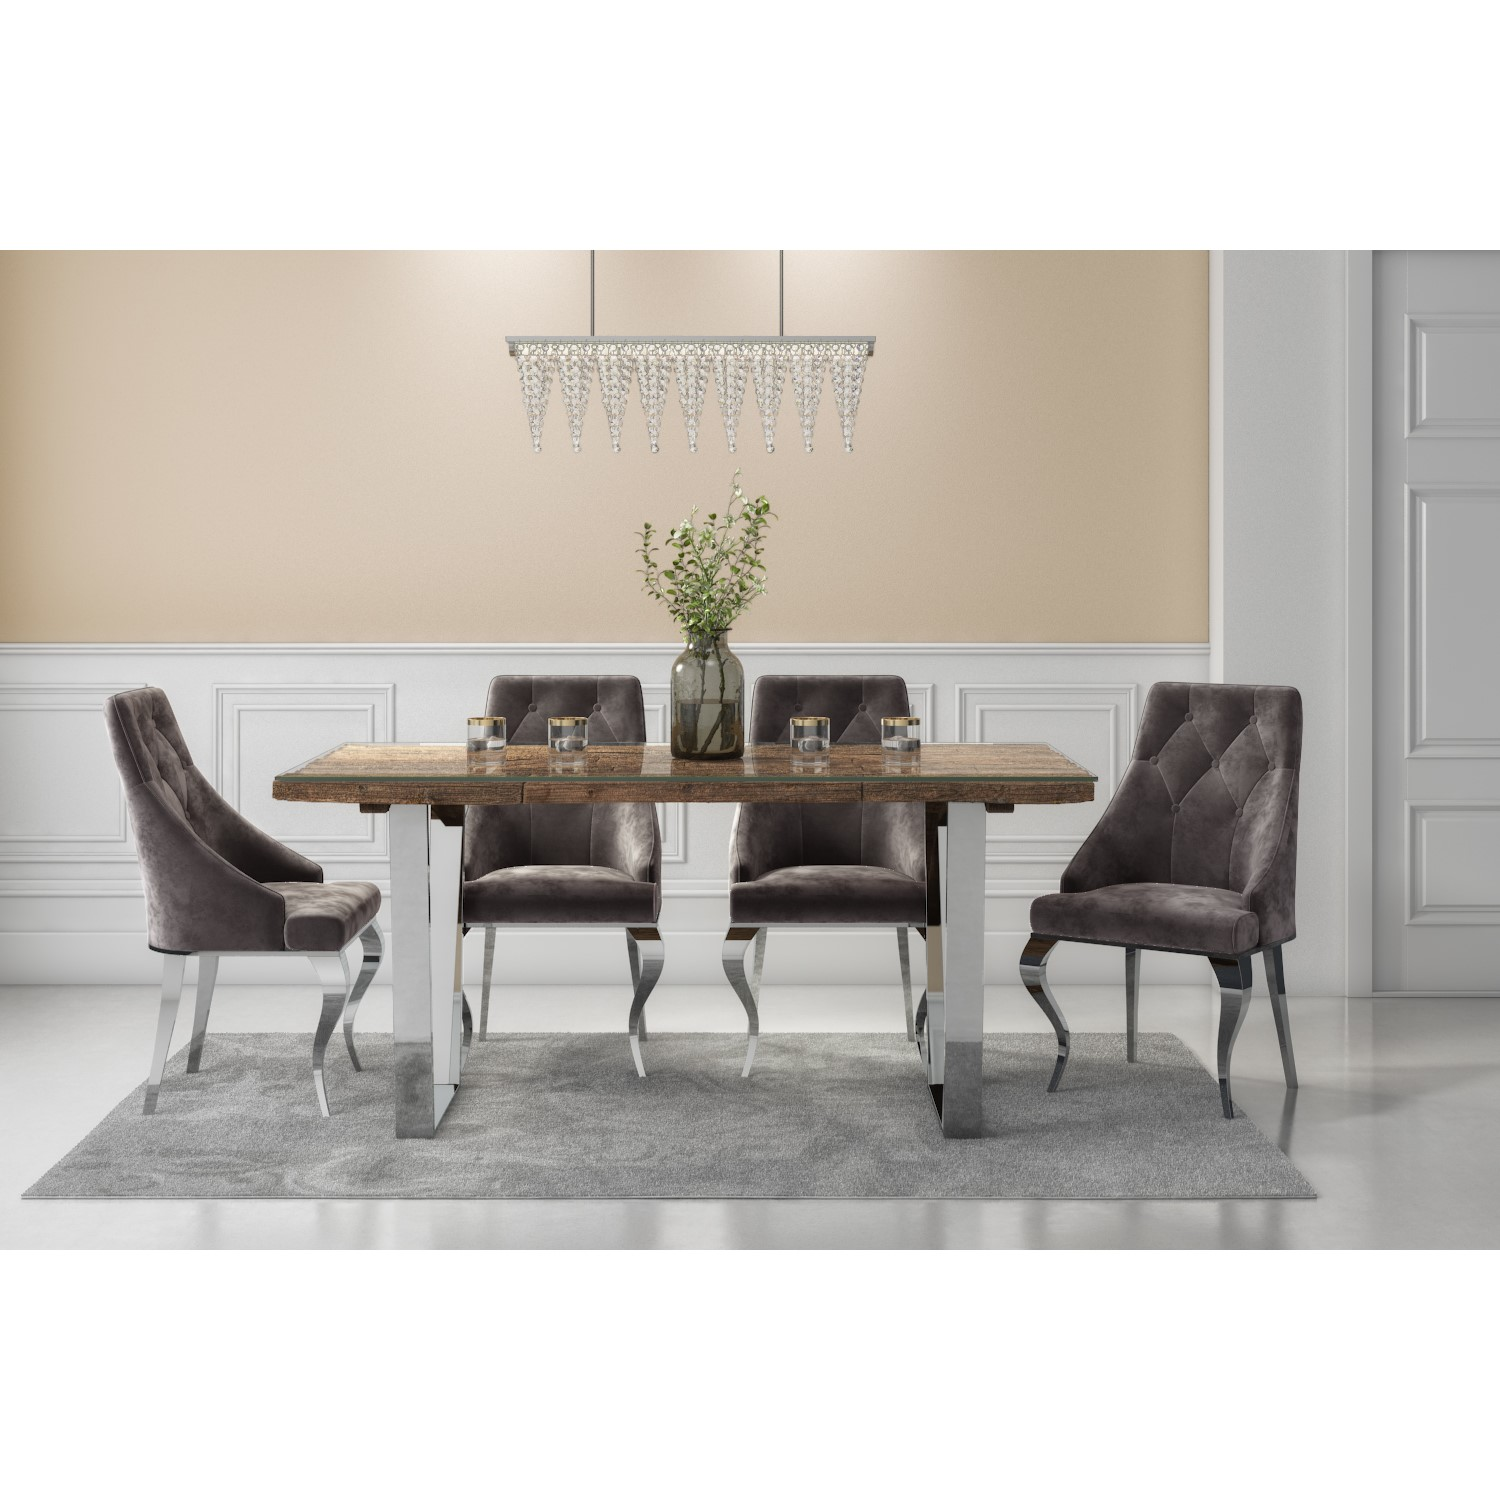 Admirable Railway Wood Glass Top Dining Table Set With 4 Grey Velvet Chairs Grayson Download Free Architecture Designs Viewormadebymaigaardcom